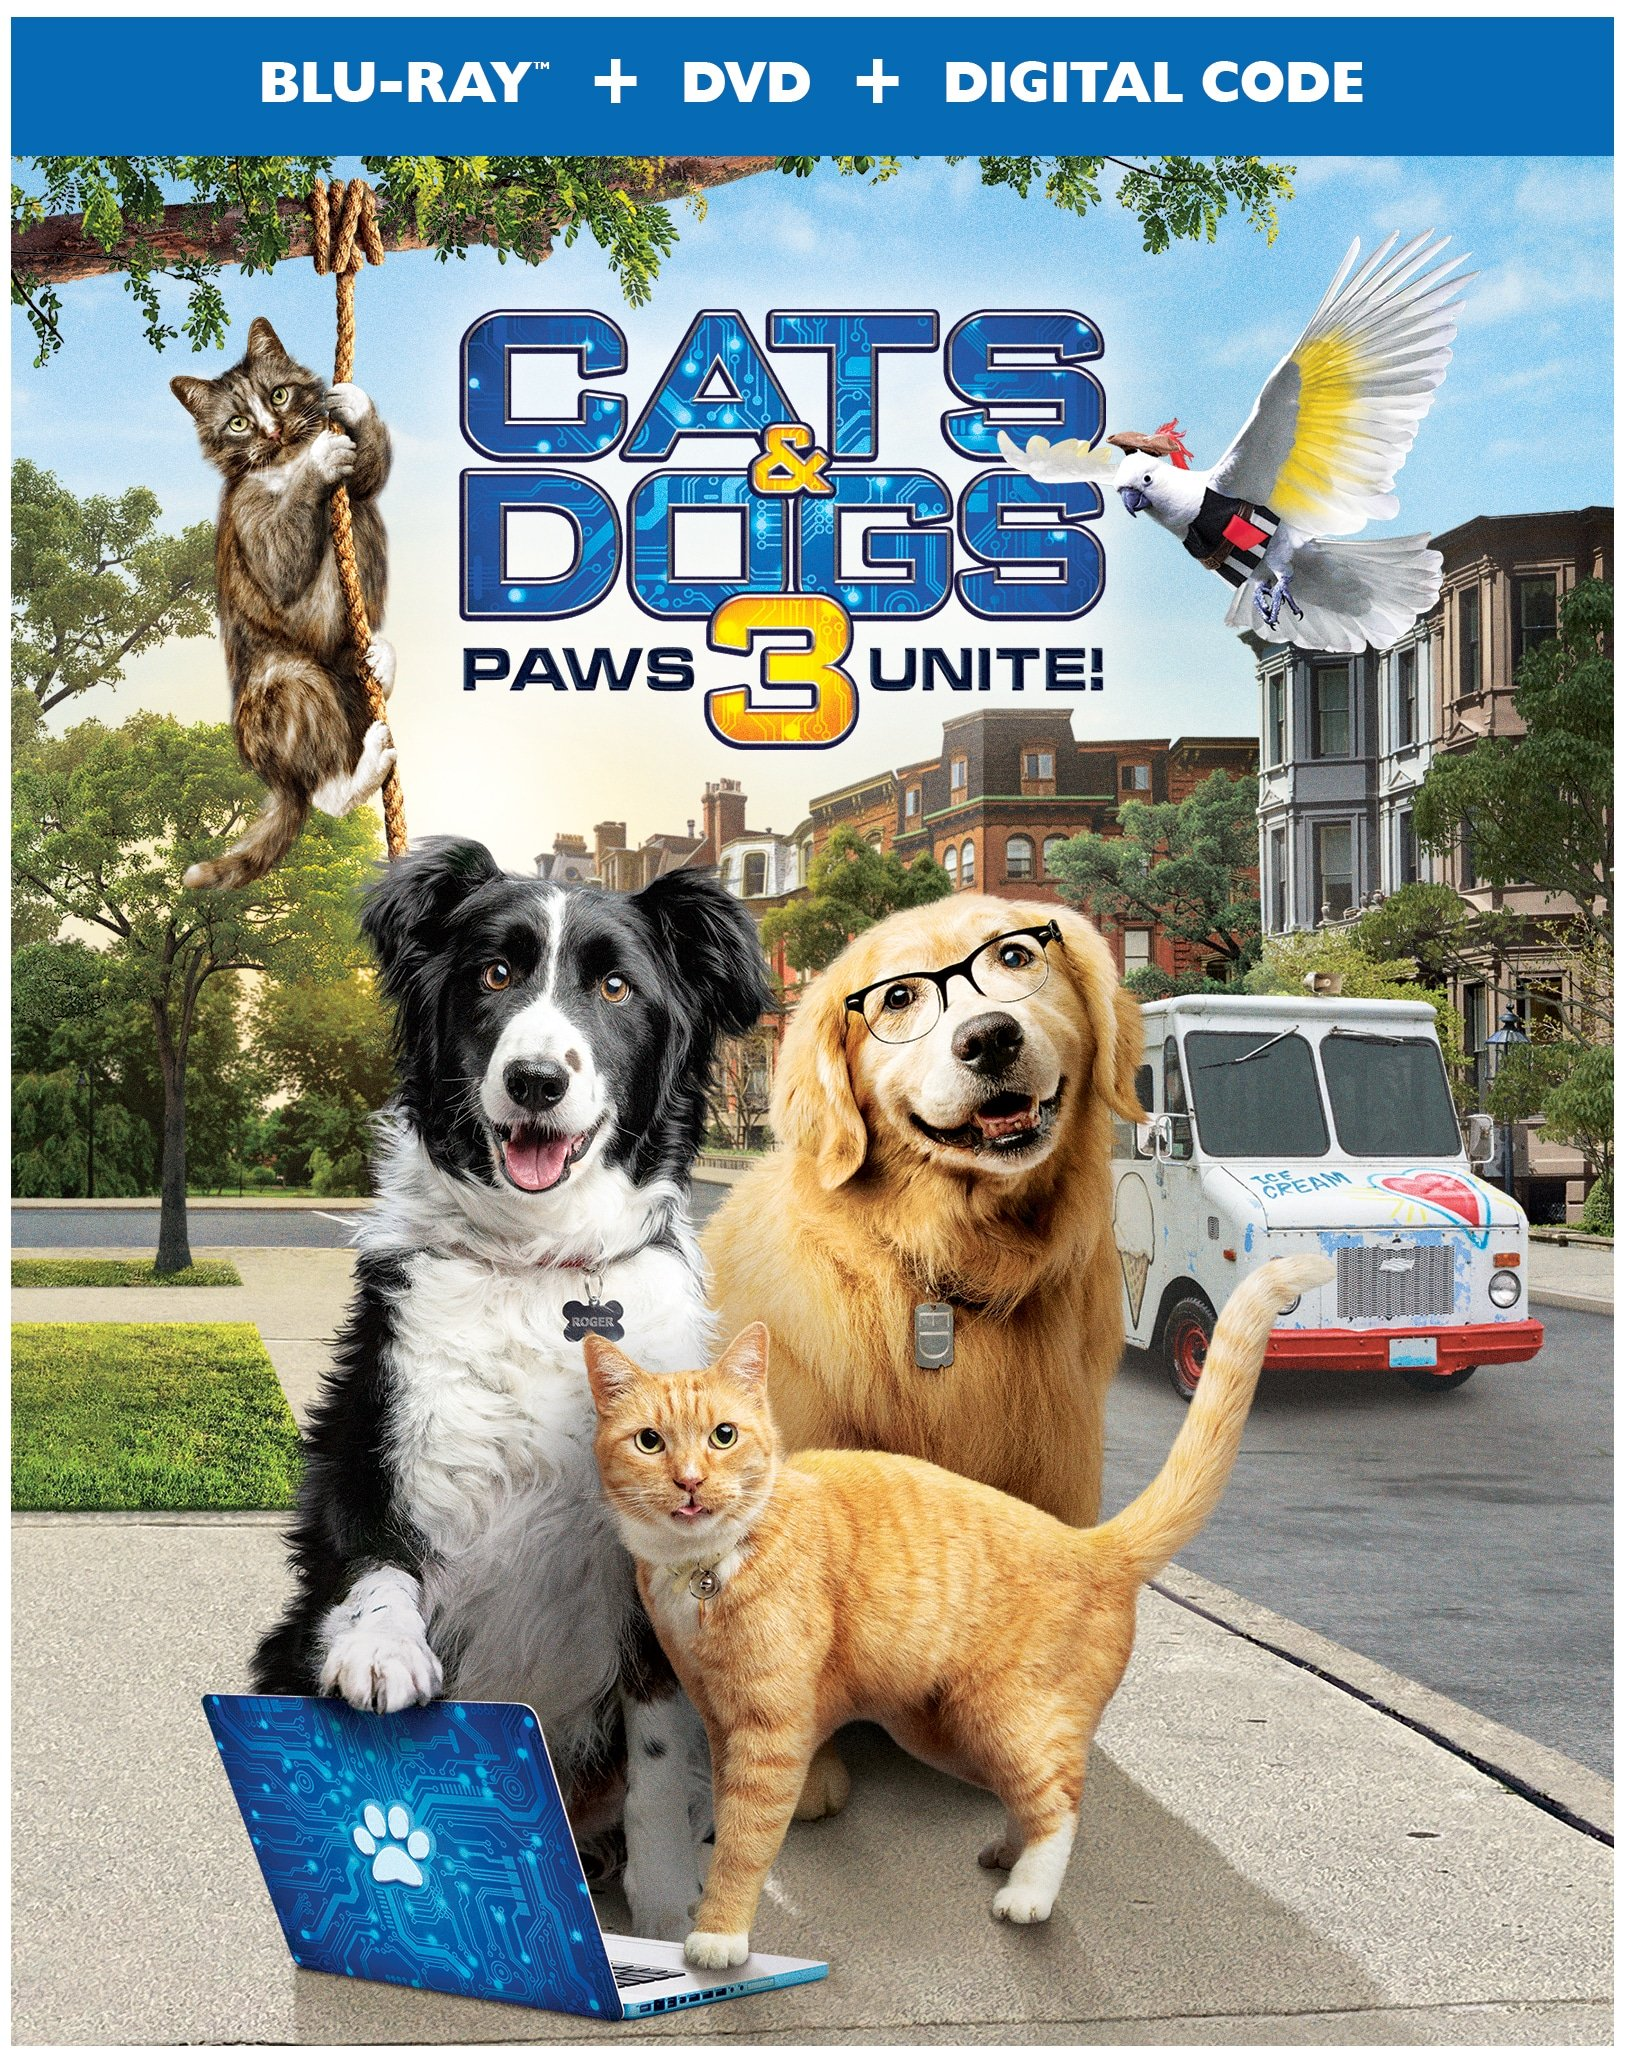 Cats and Dogs 3: Paws Unite! Poster. Discover who has the upper paw in Cats & Dogs 3: Paws Unite!,the next feature-length installment of the popular Cats & Dogs franchise from Warner Bros. Home Entertainment. Available on Digital on September 15 and on both Blu-ray Combo Pack and DVD on October 13.